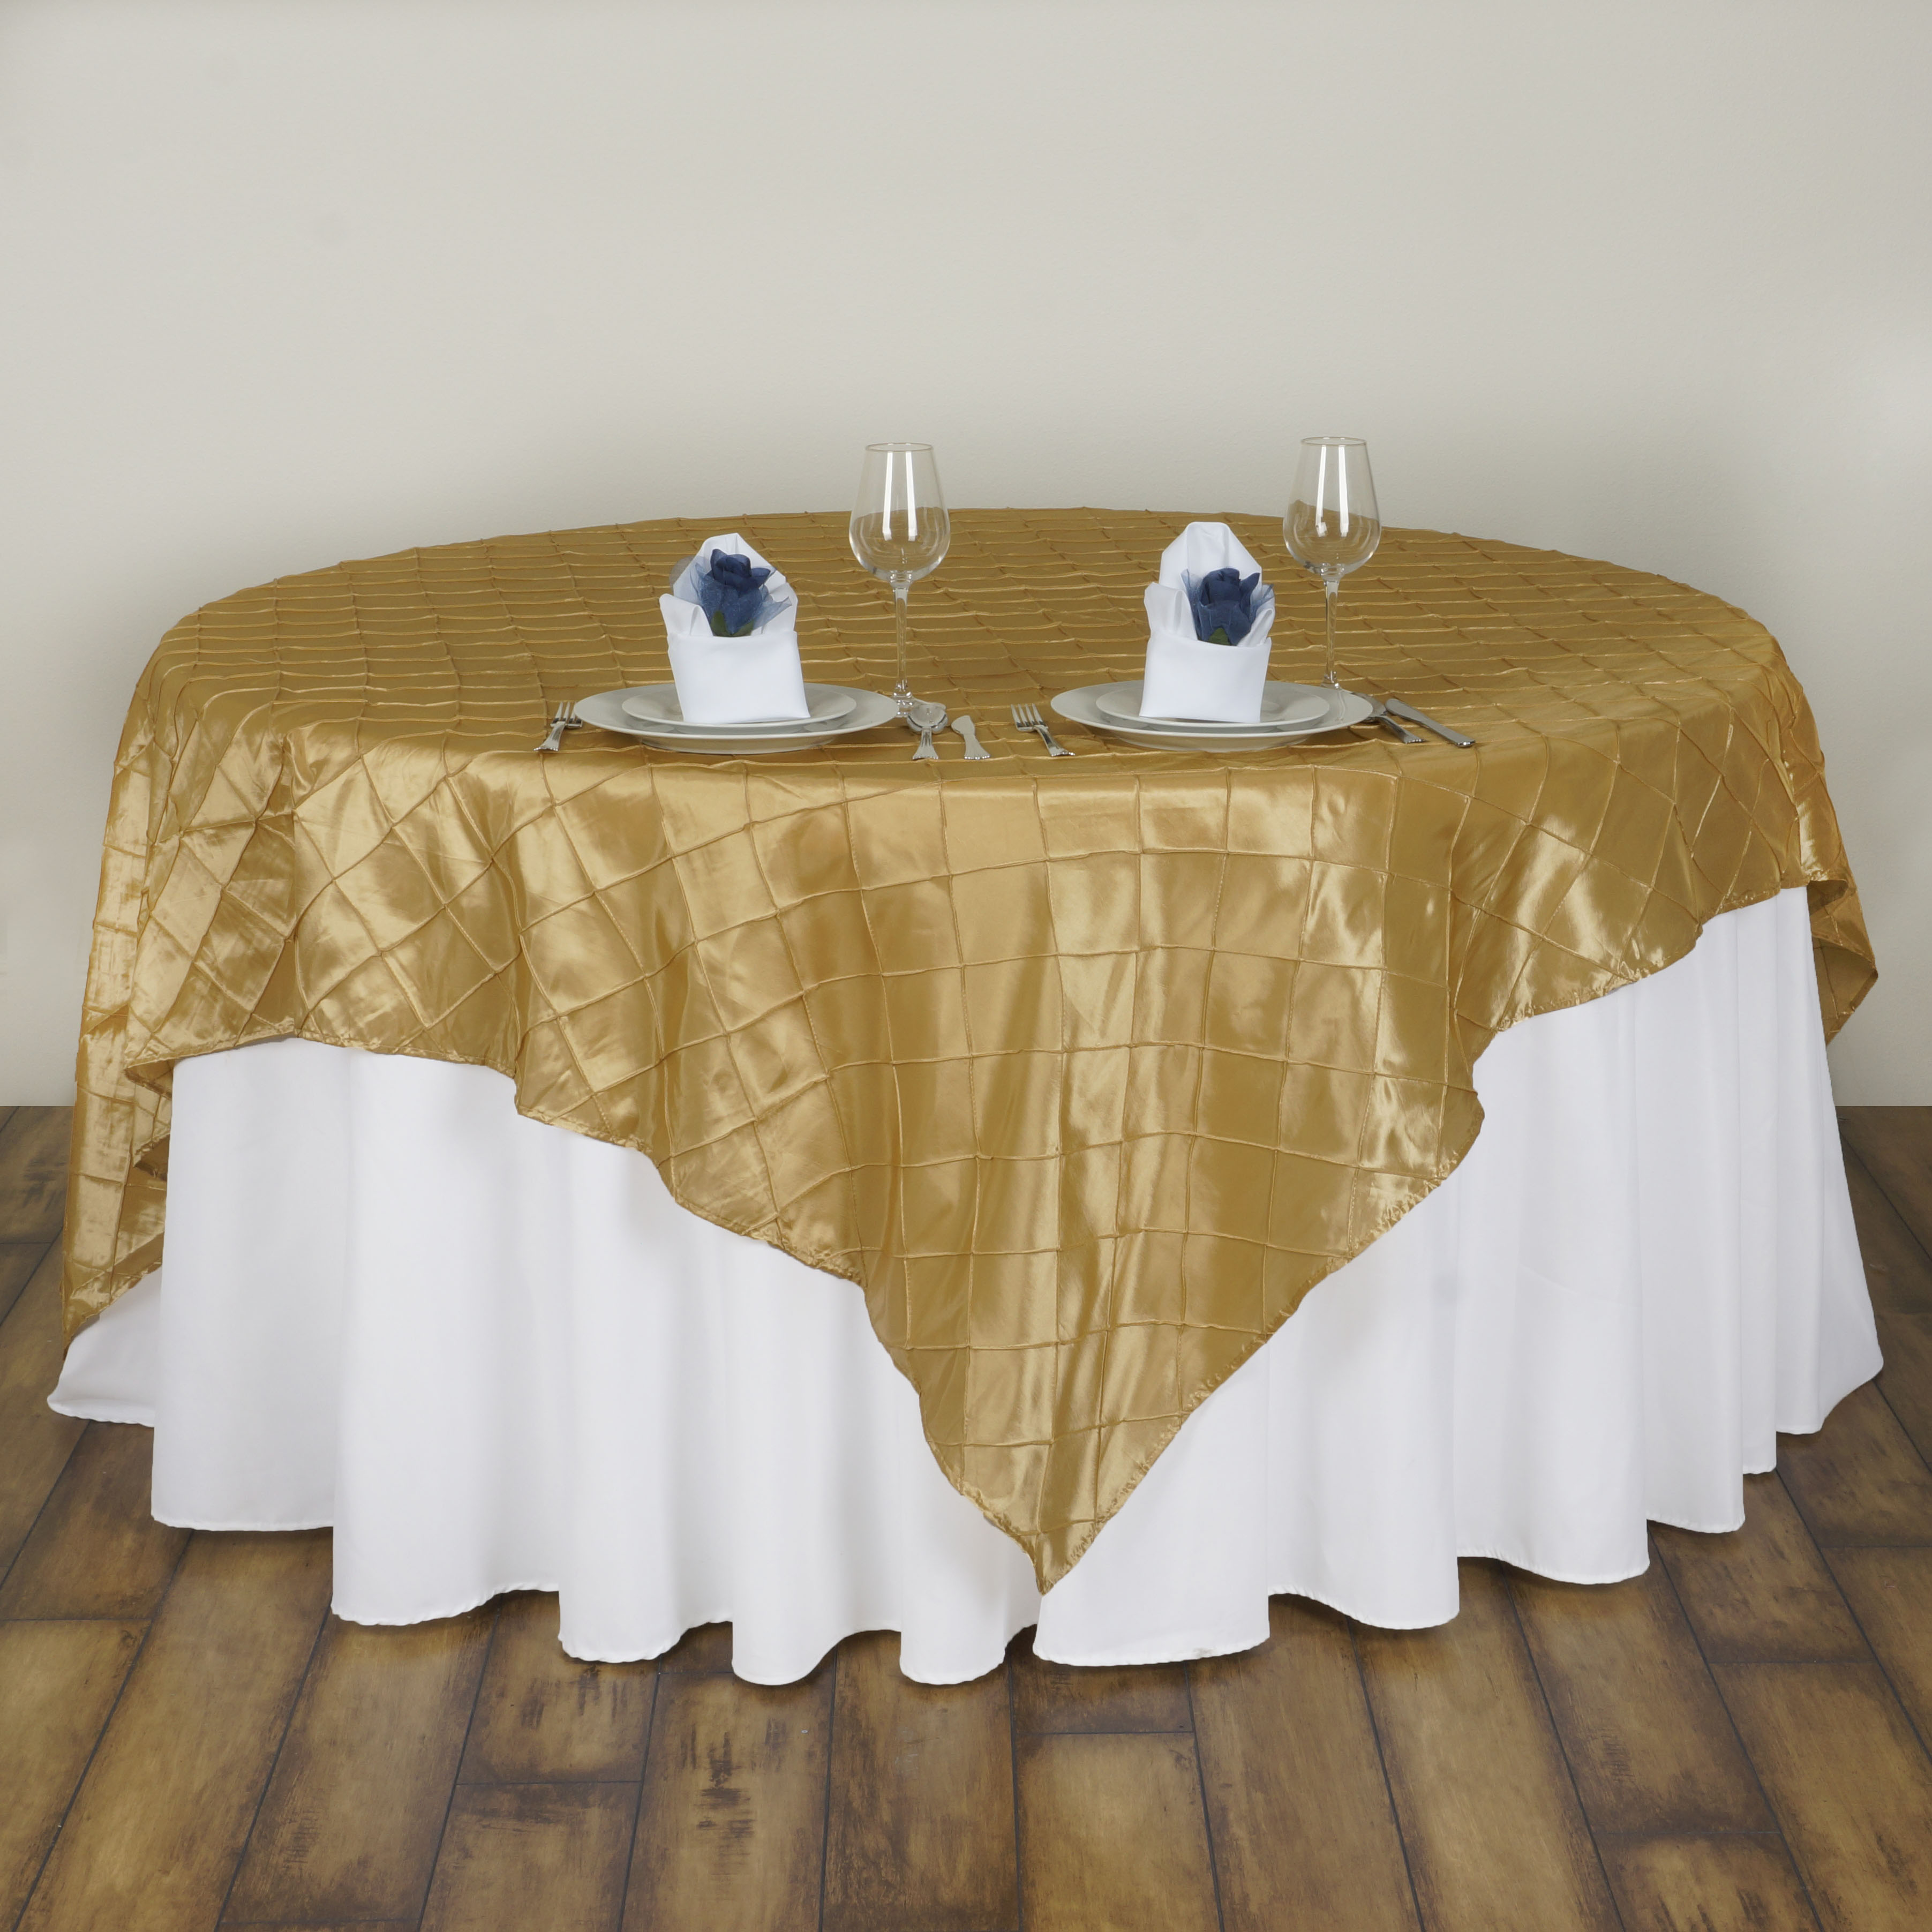 6 Pcs 72x72 Quot Square Pintuck Table Overlays Wedding Linens